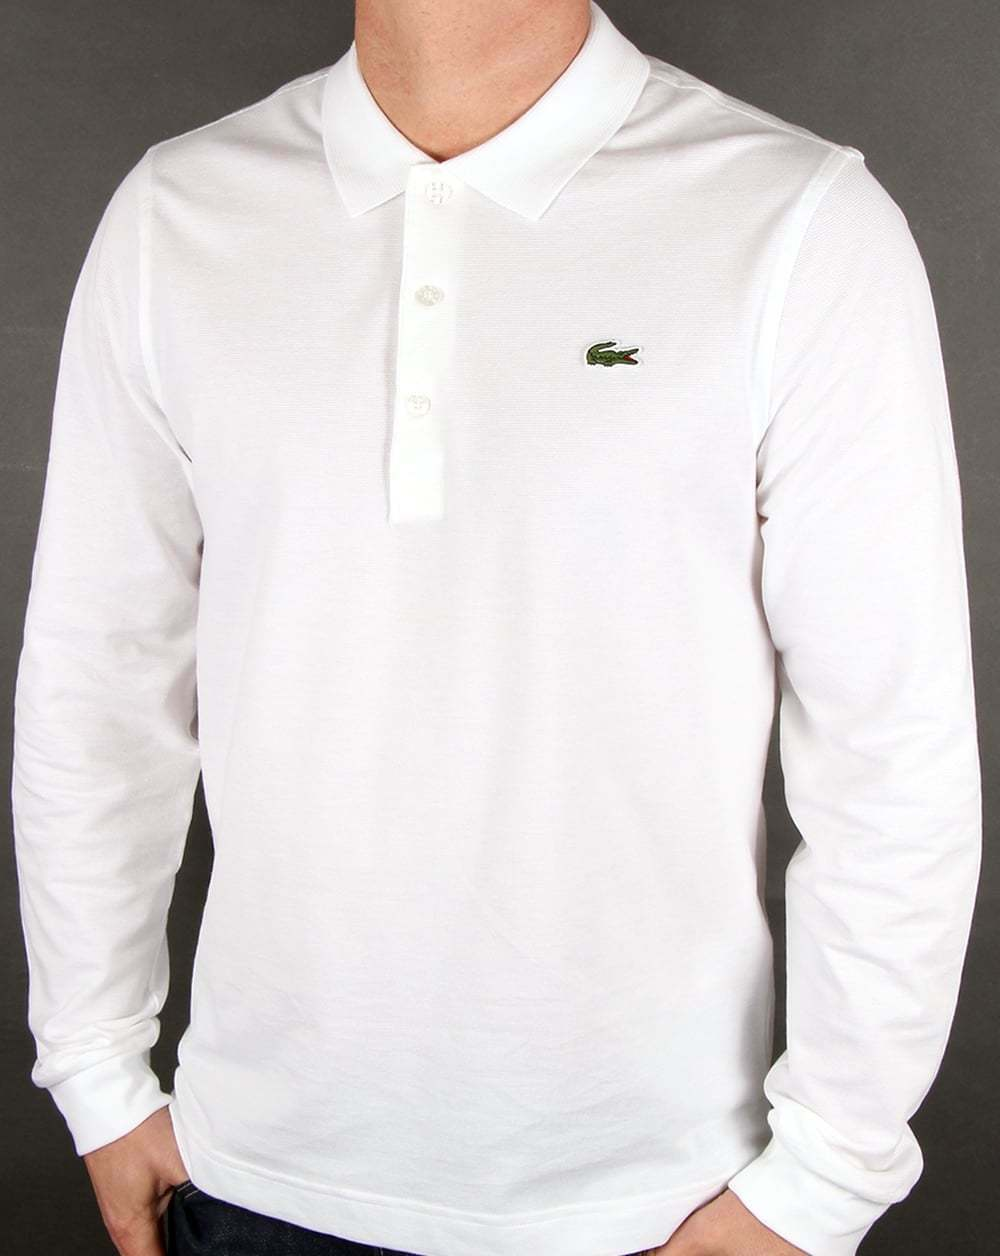 Lacoste Long Sleeve Polo Shirt in White - ultra lightweight cotton